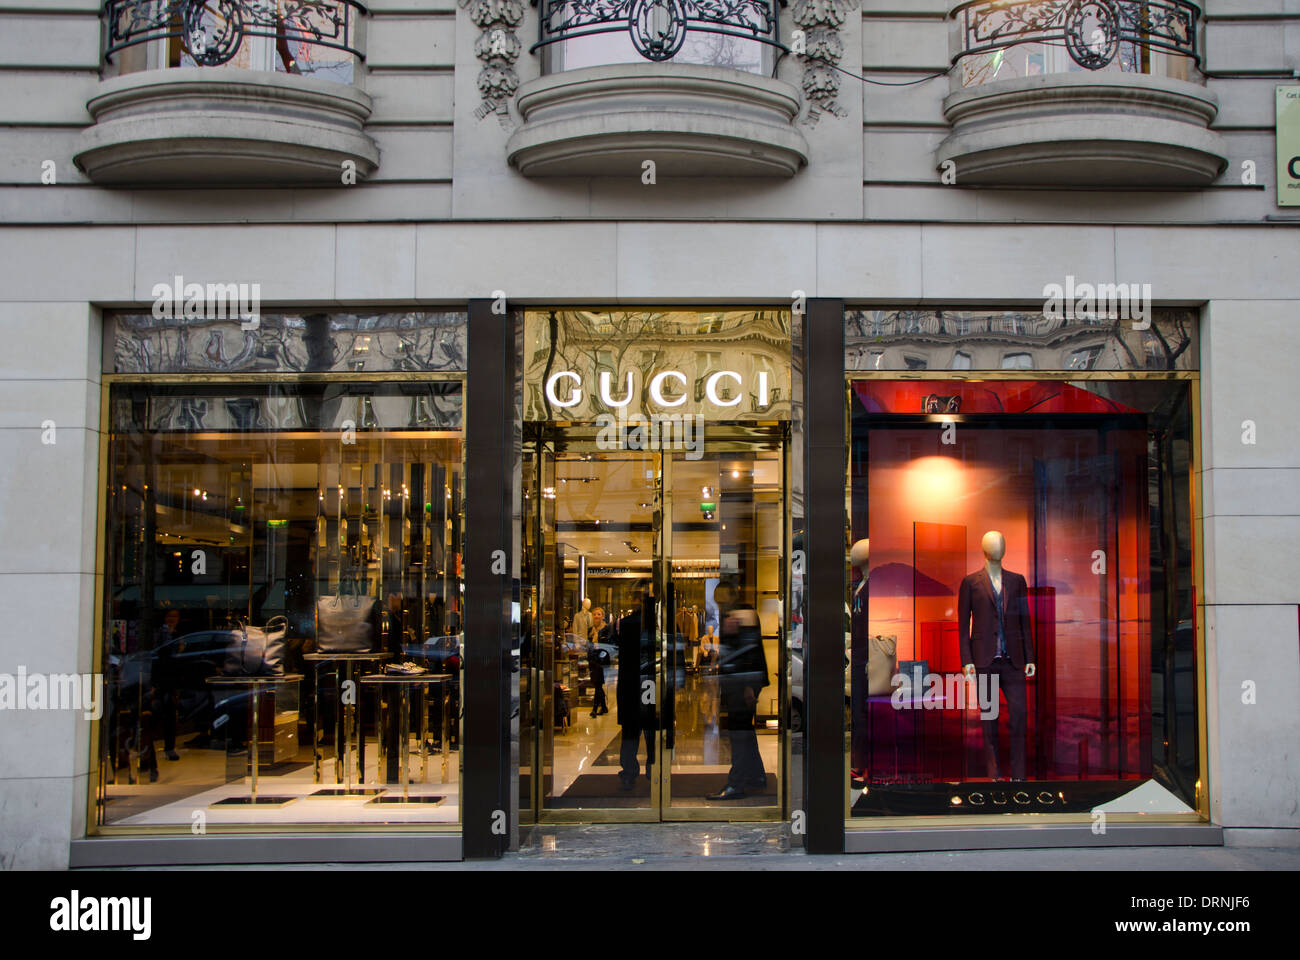 facade of a italian fashion gucci store shop in paris france stock photo royalty free image. Black Bedroom Furniture Sets. Home Design Ideas